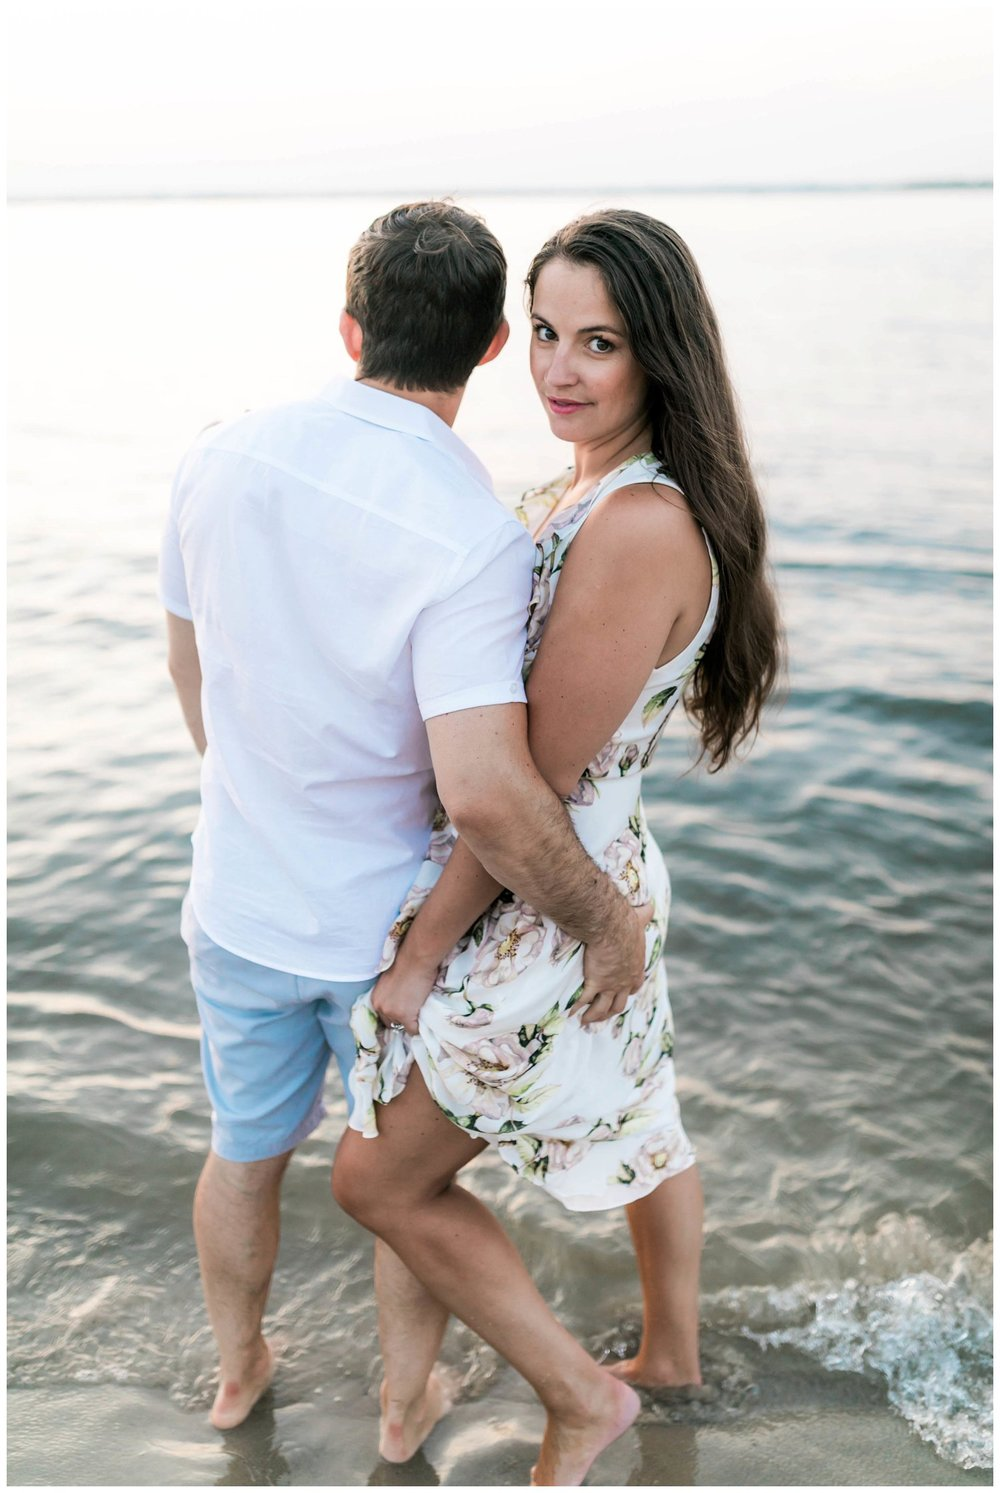 BridgeandDrew_Sunset_Engagement_OceanCityNJ_Photographer_MagdalenaStudios_0008.jpg